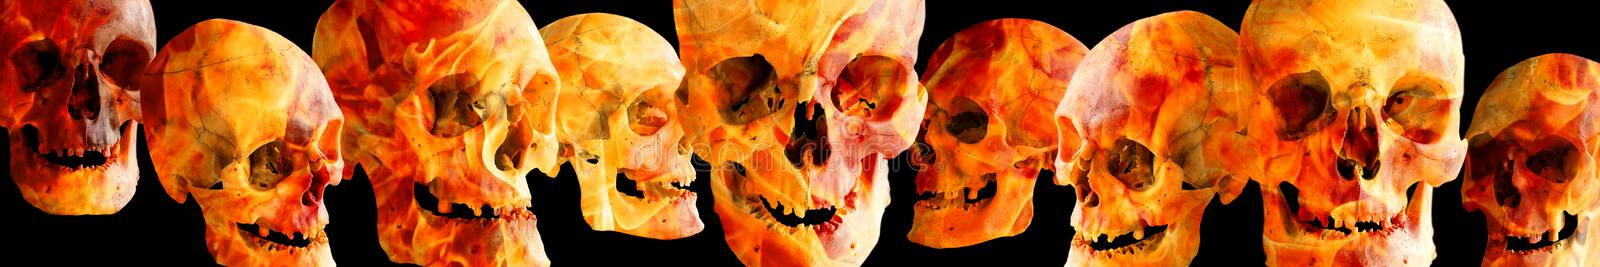 Fiery human skulls at different angles on a black background. The header or footer of the image. Isolated on black stock photography